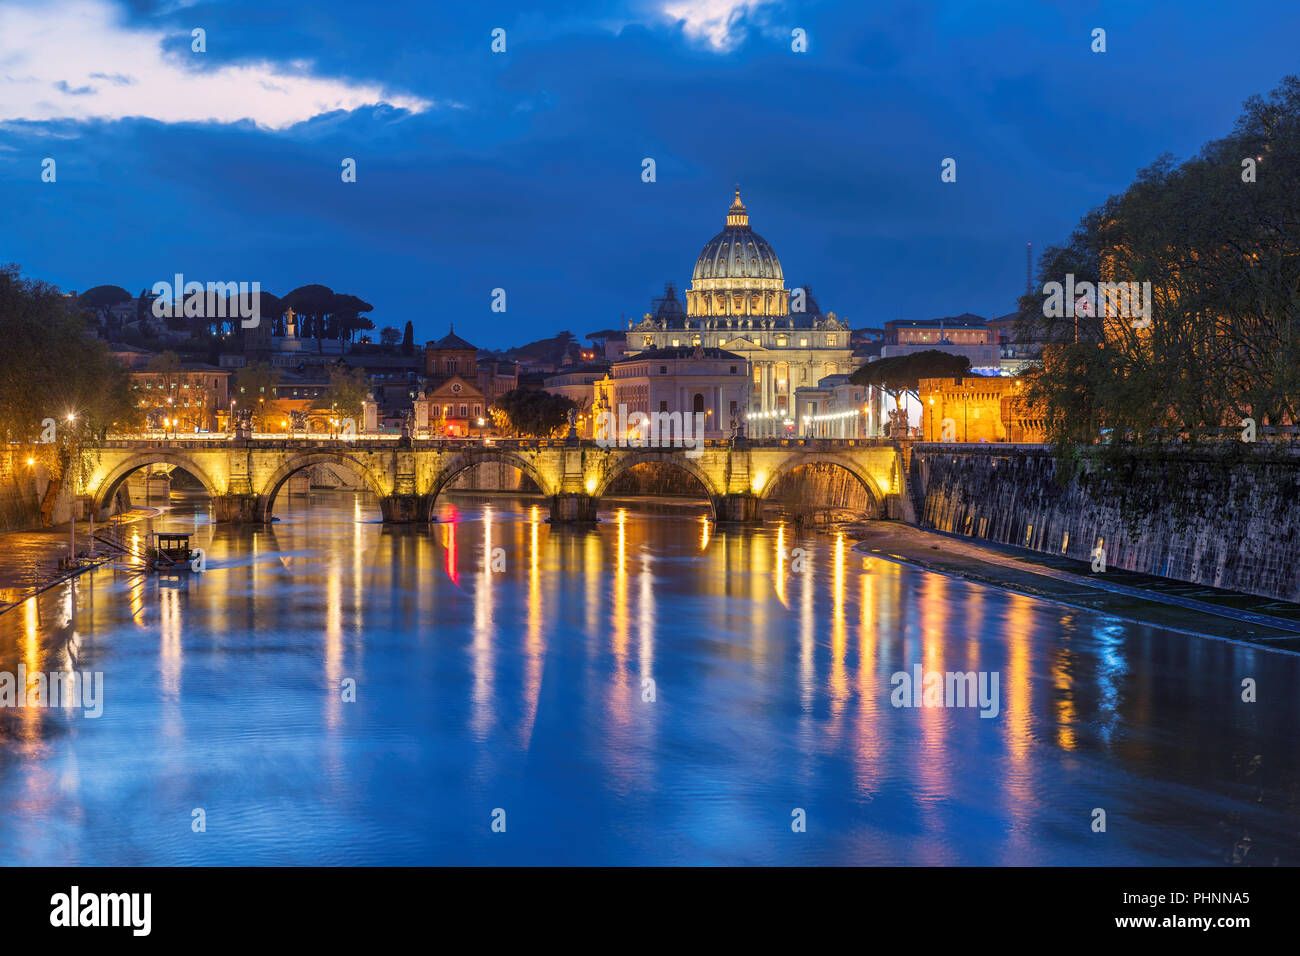 Rome at night, Italy. St. Peter's cathedral with bridge in Vatican, Rome, Italy. - Stock Image